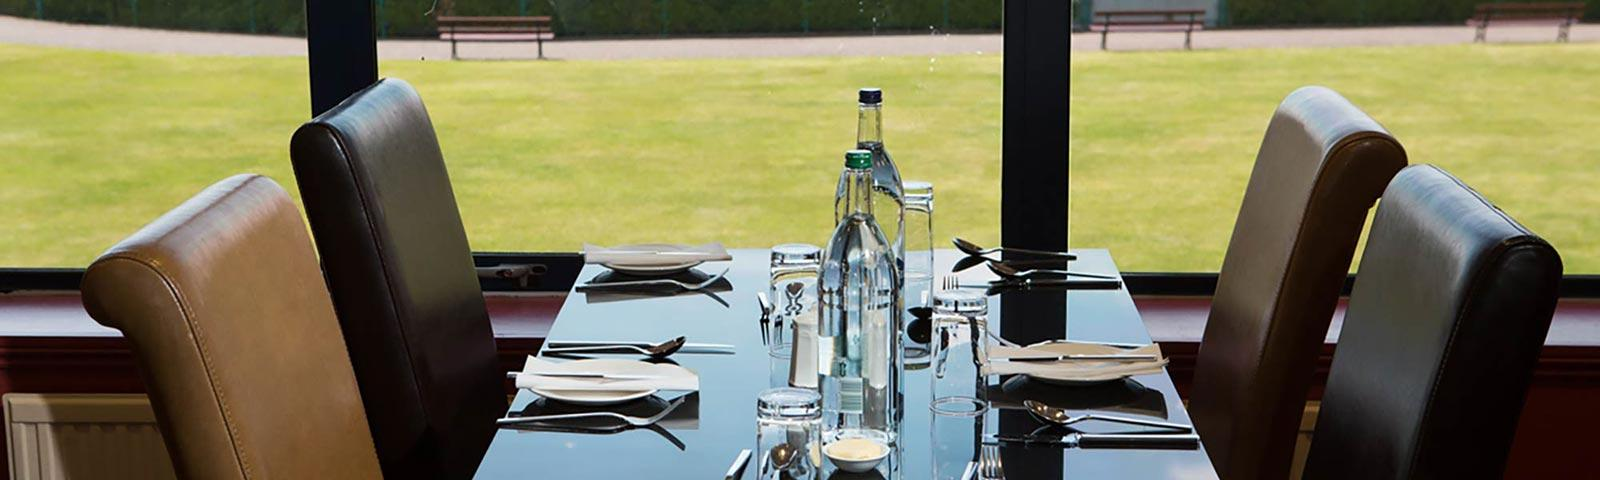 Table in the Seasons Restaurant at Southwell Racecourse.